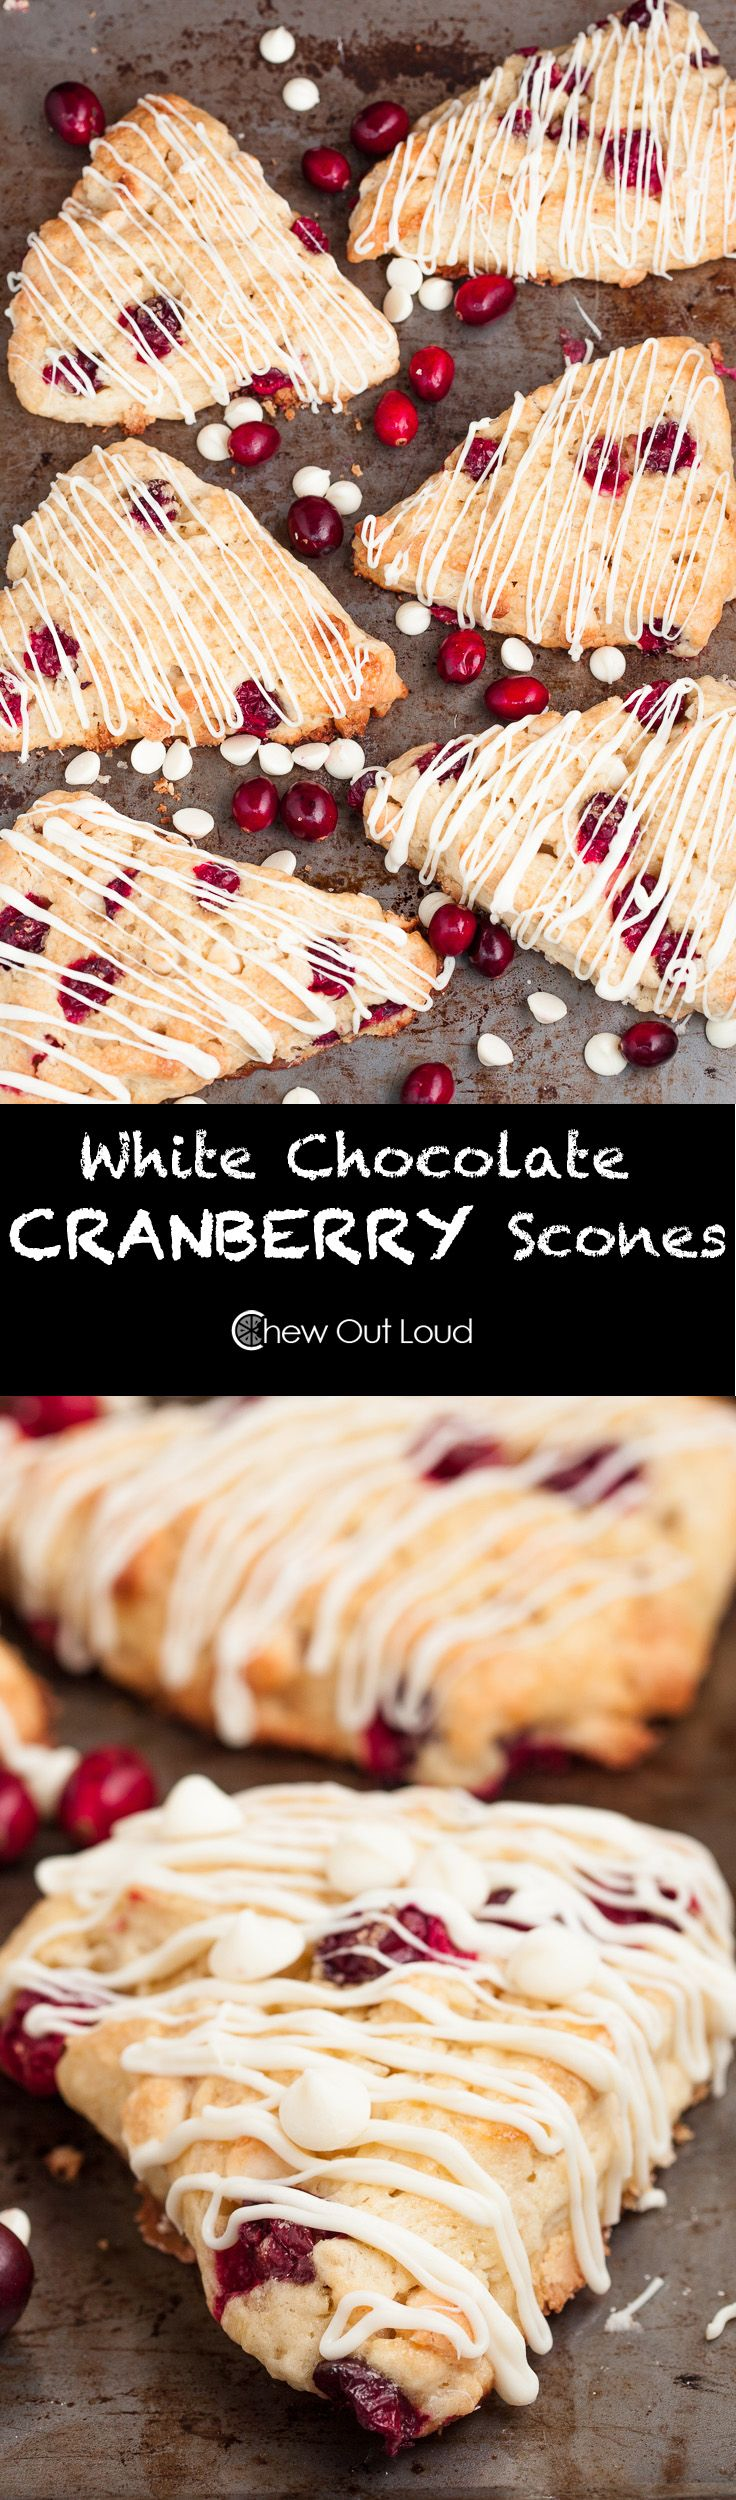 White Chocolate Cranberry Scones - Chew Out Loud